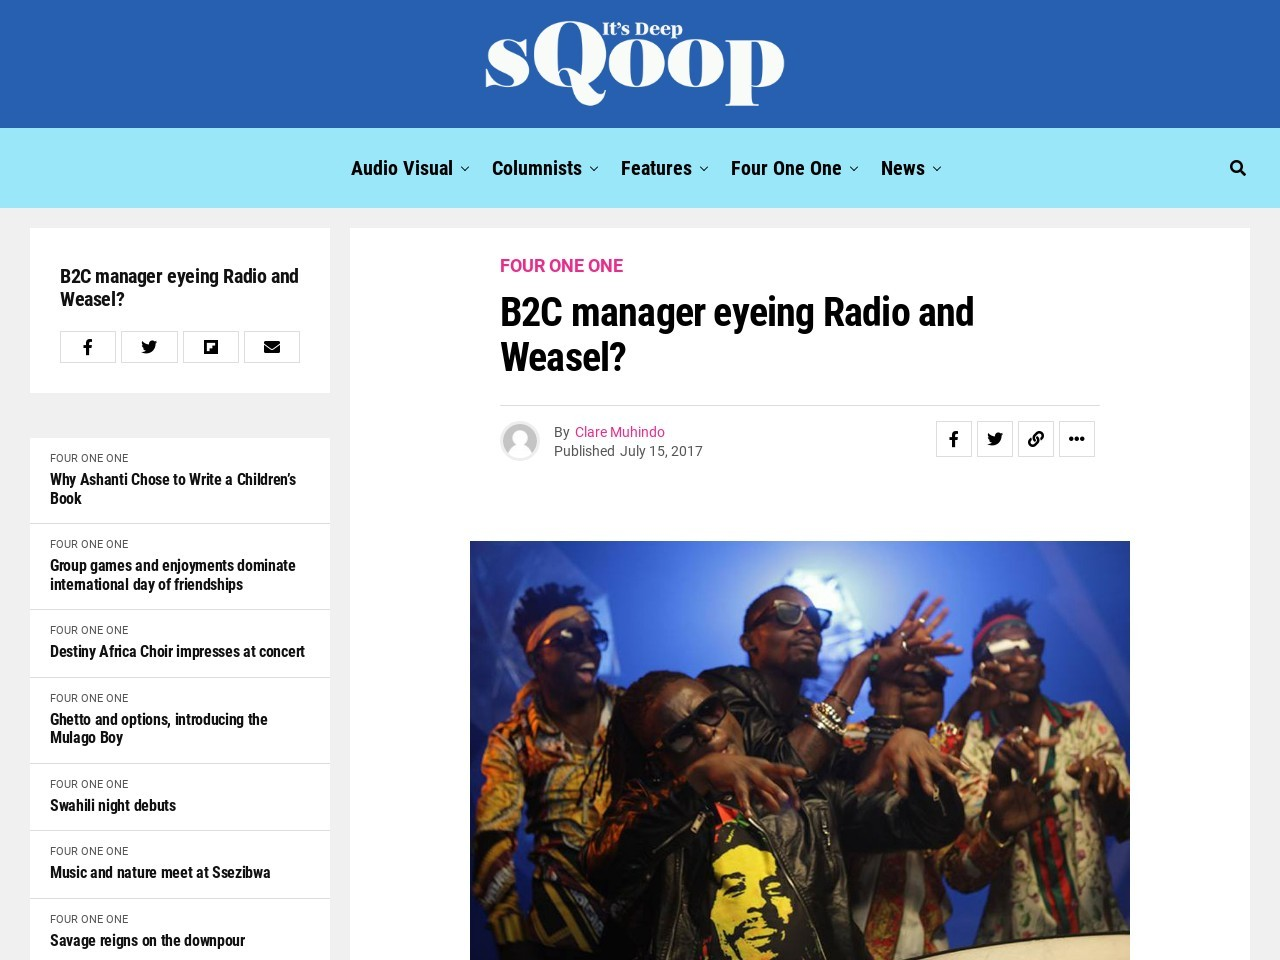 B2C manager eyeing Radio and Weasel?